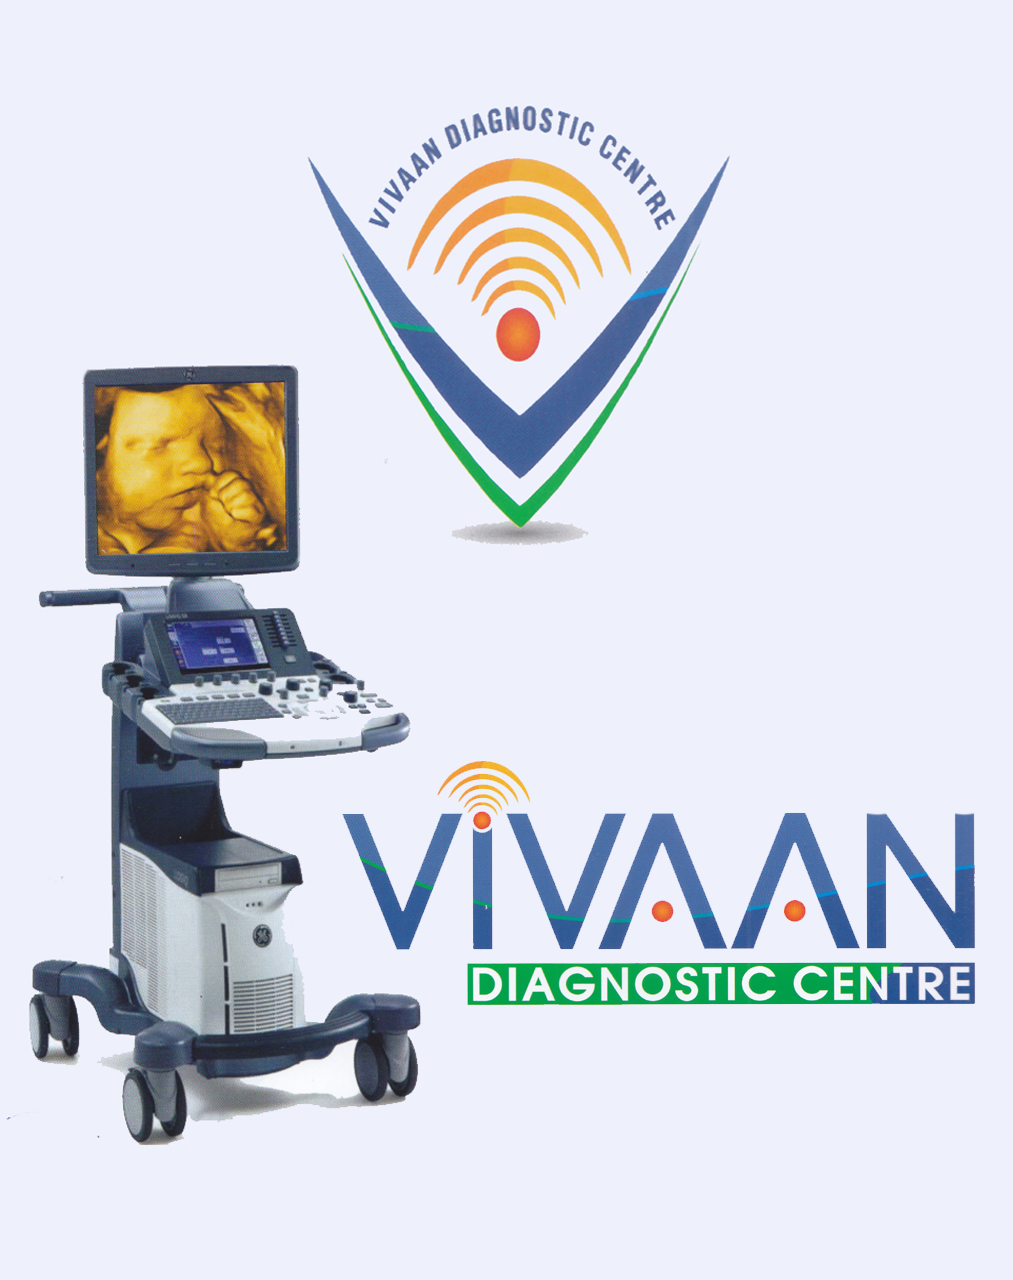 VIVAAN Diagonostic Center